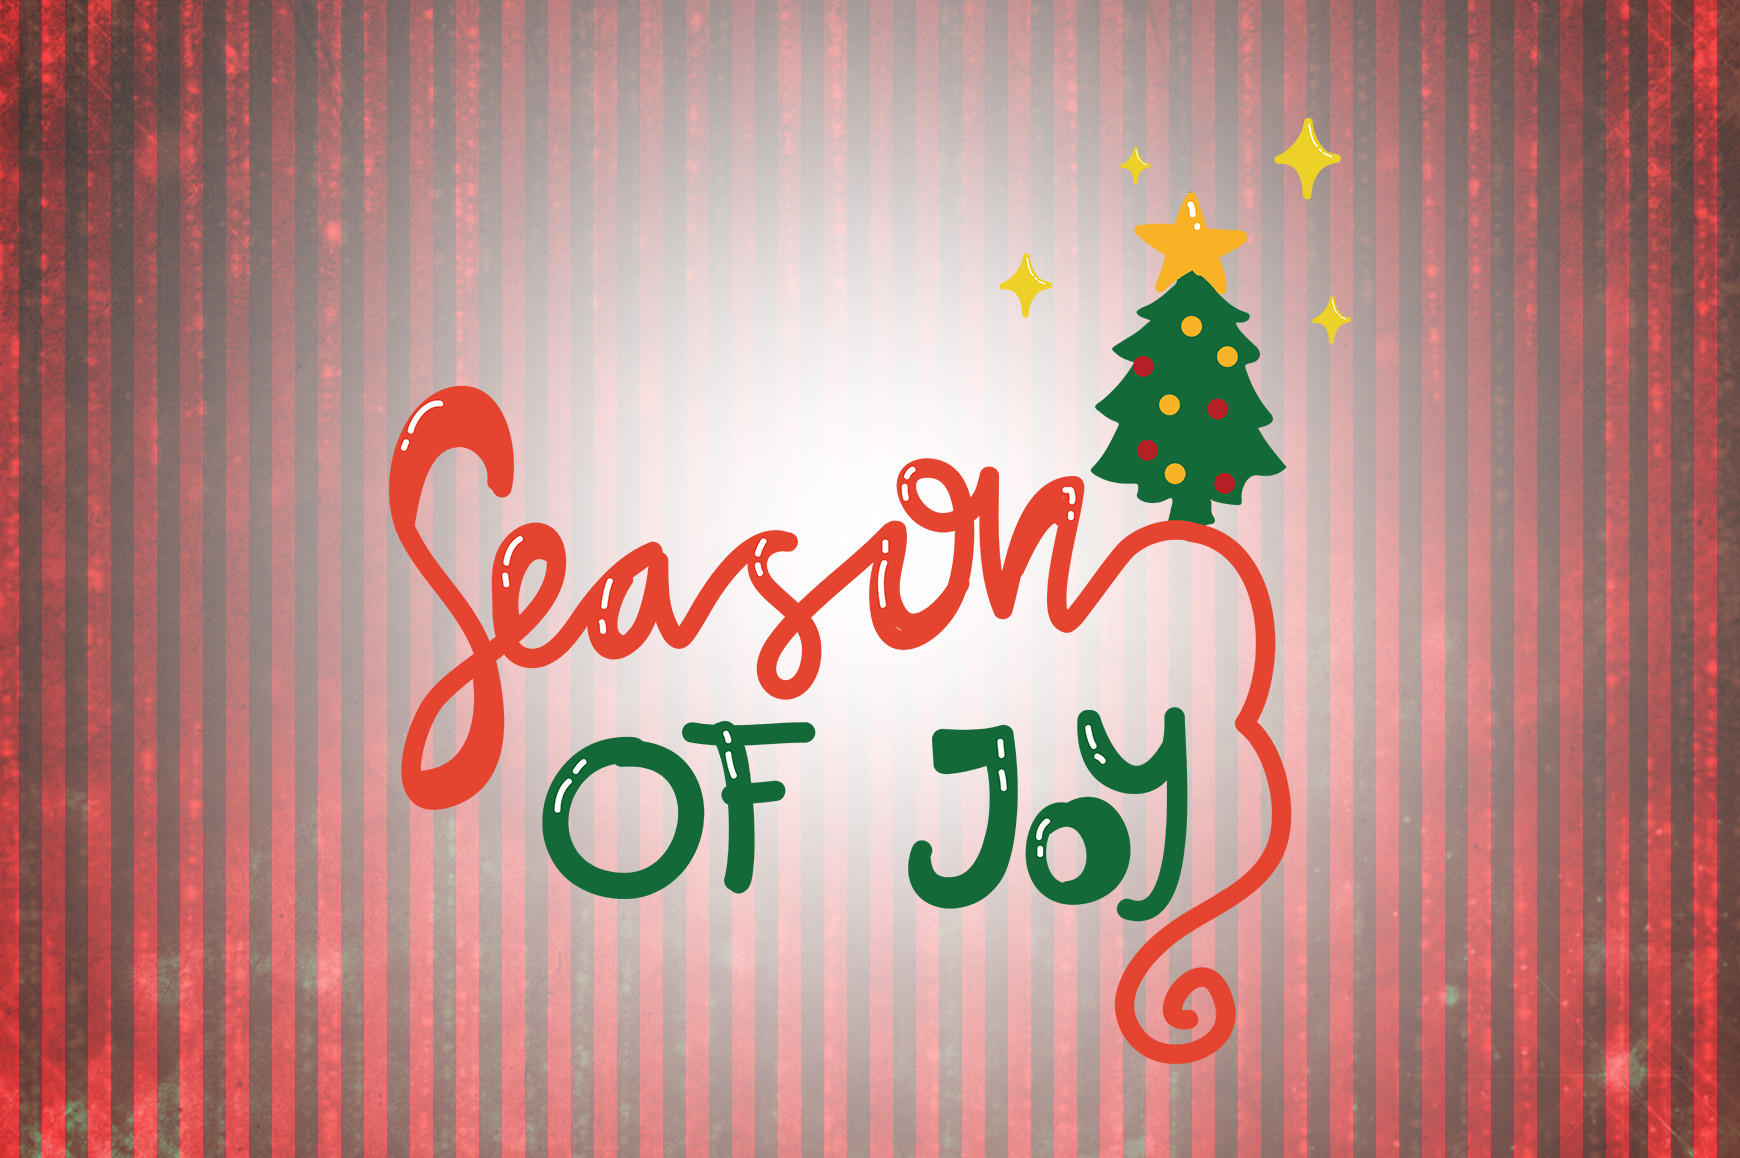 Season Of Joy Christmas Quotes Graphic By Wienscollection